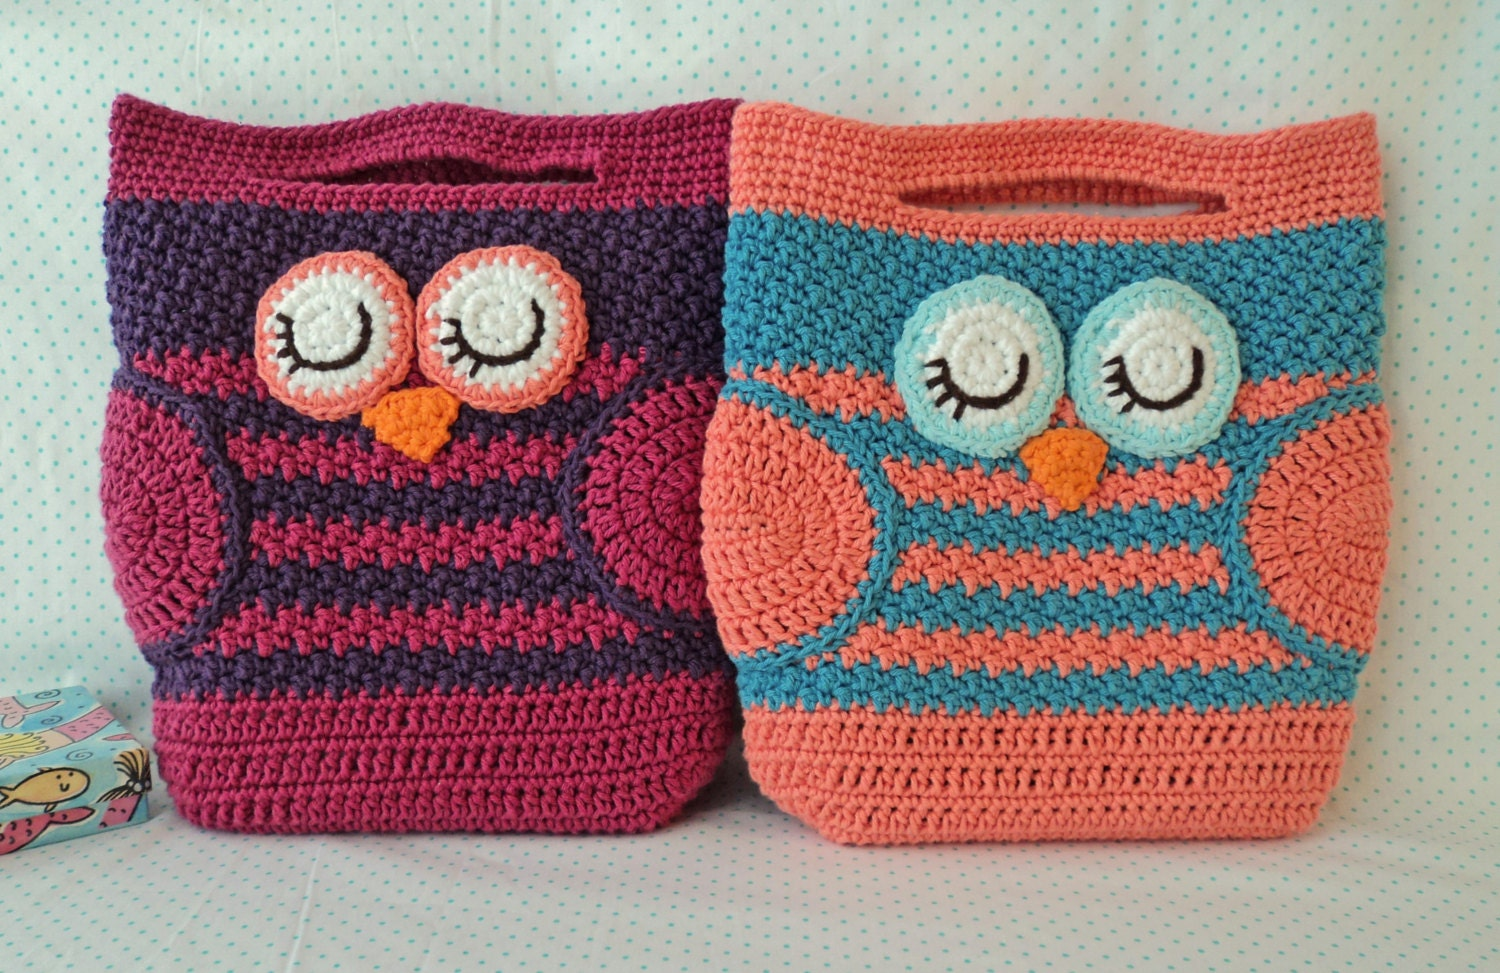 Mini Owl Bag: Crochet Pattern Instant Download by CuteLittleCrafts